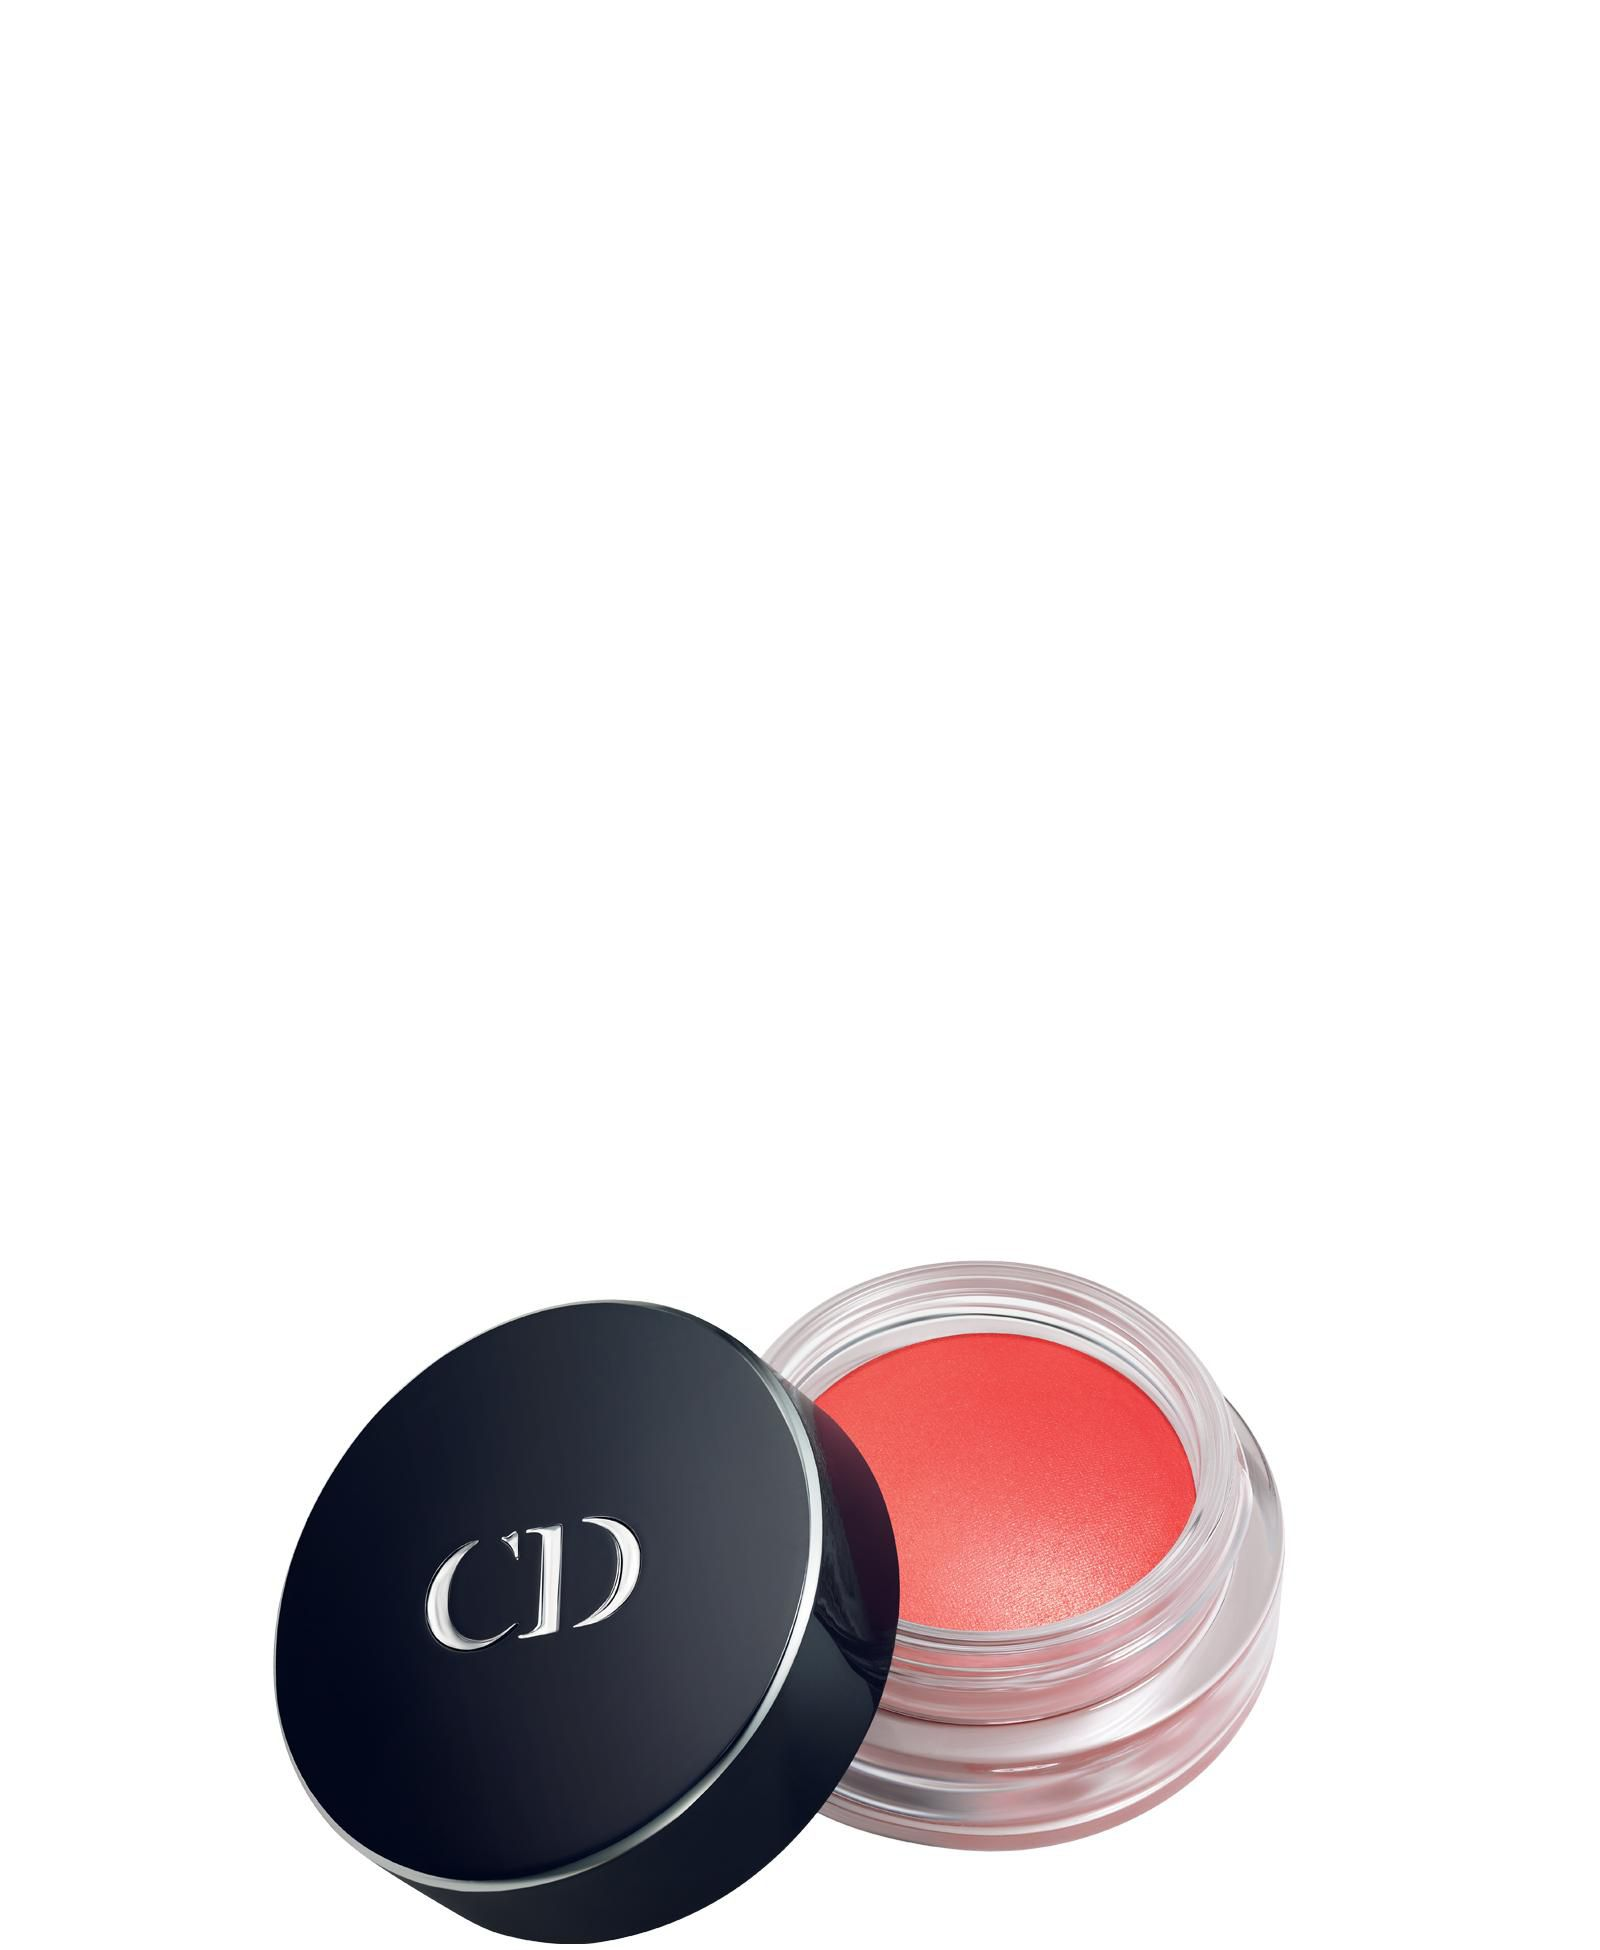 Diorblush Cheek Creme